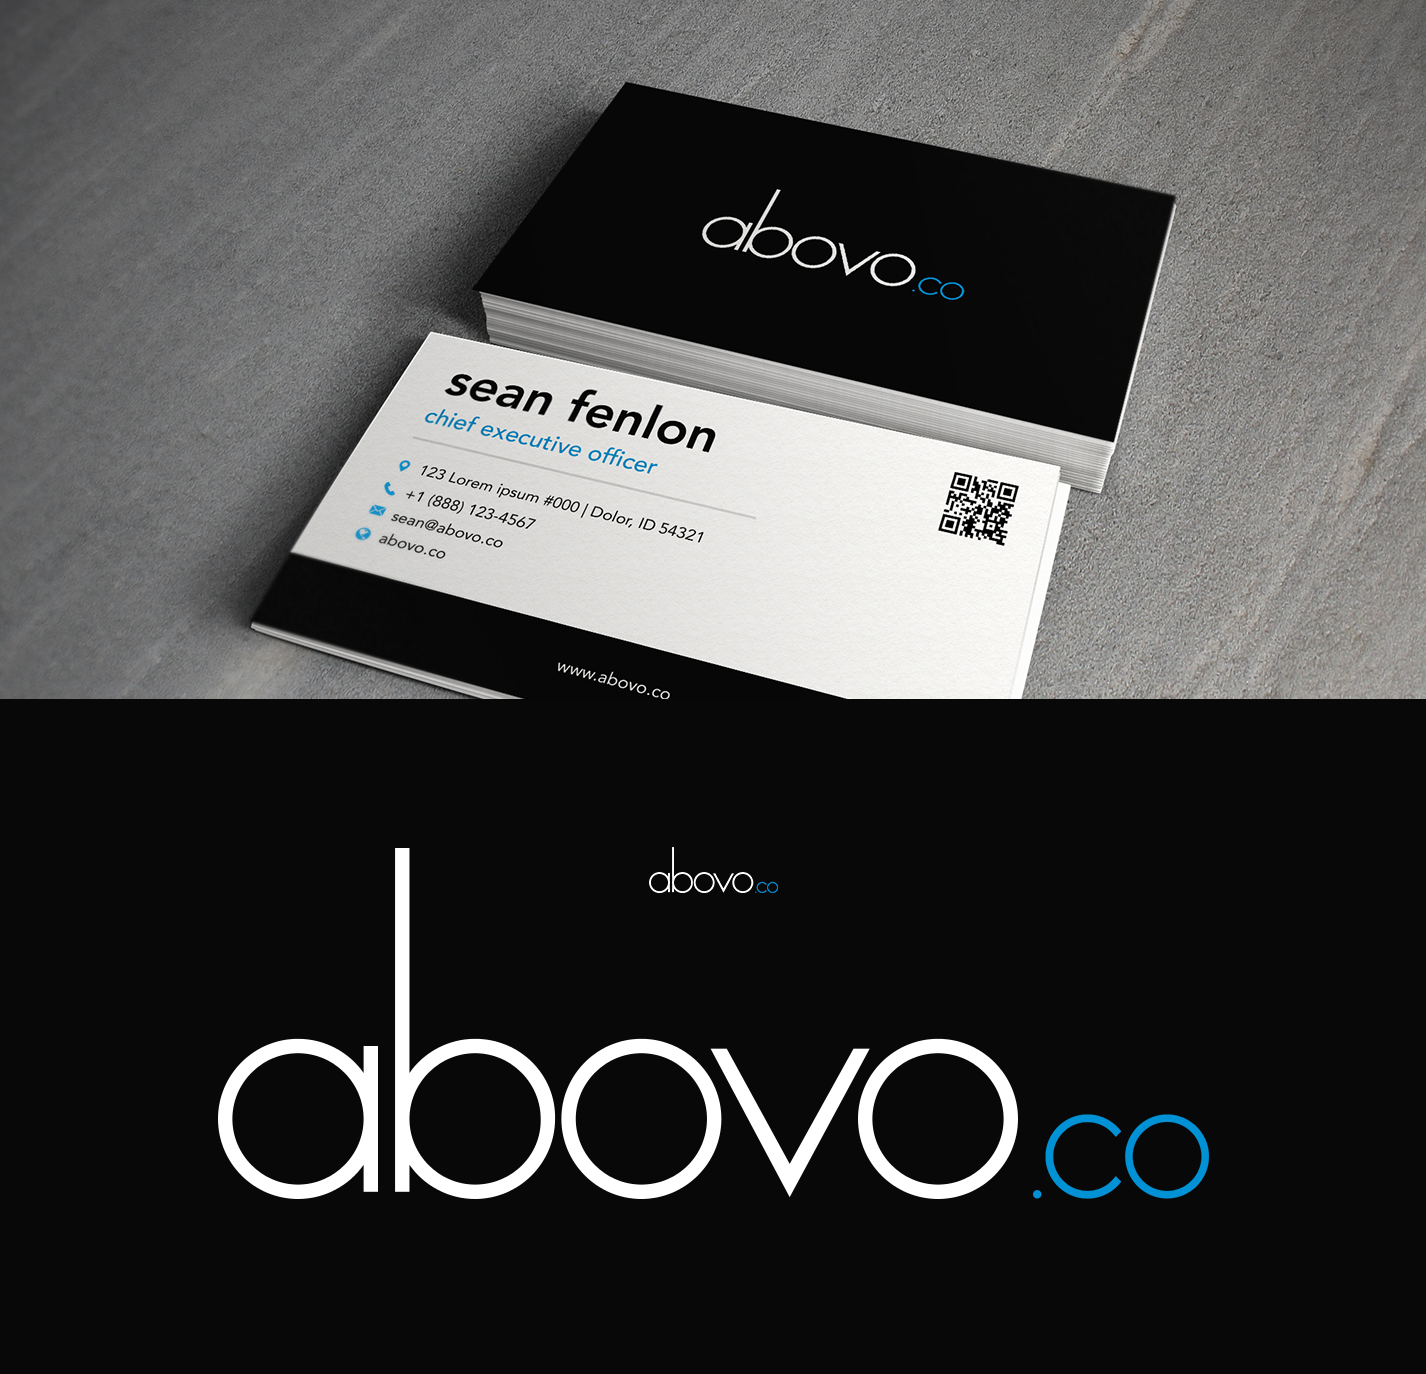 Re-design of Abovo Logo to synchronize with newly acquired Abovo.co Domain Name.